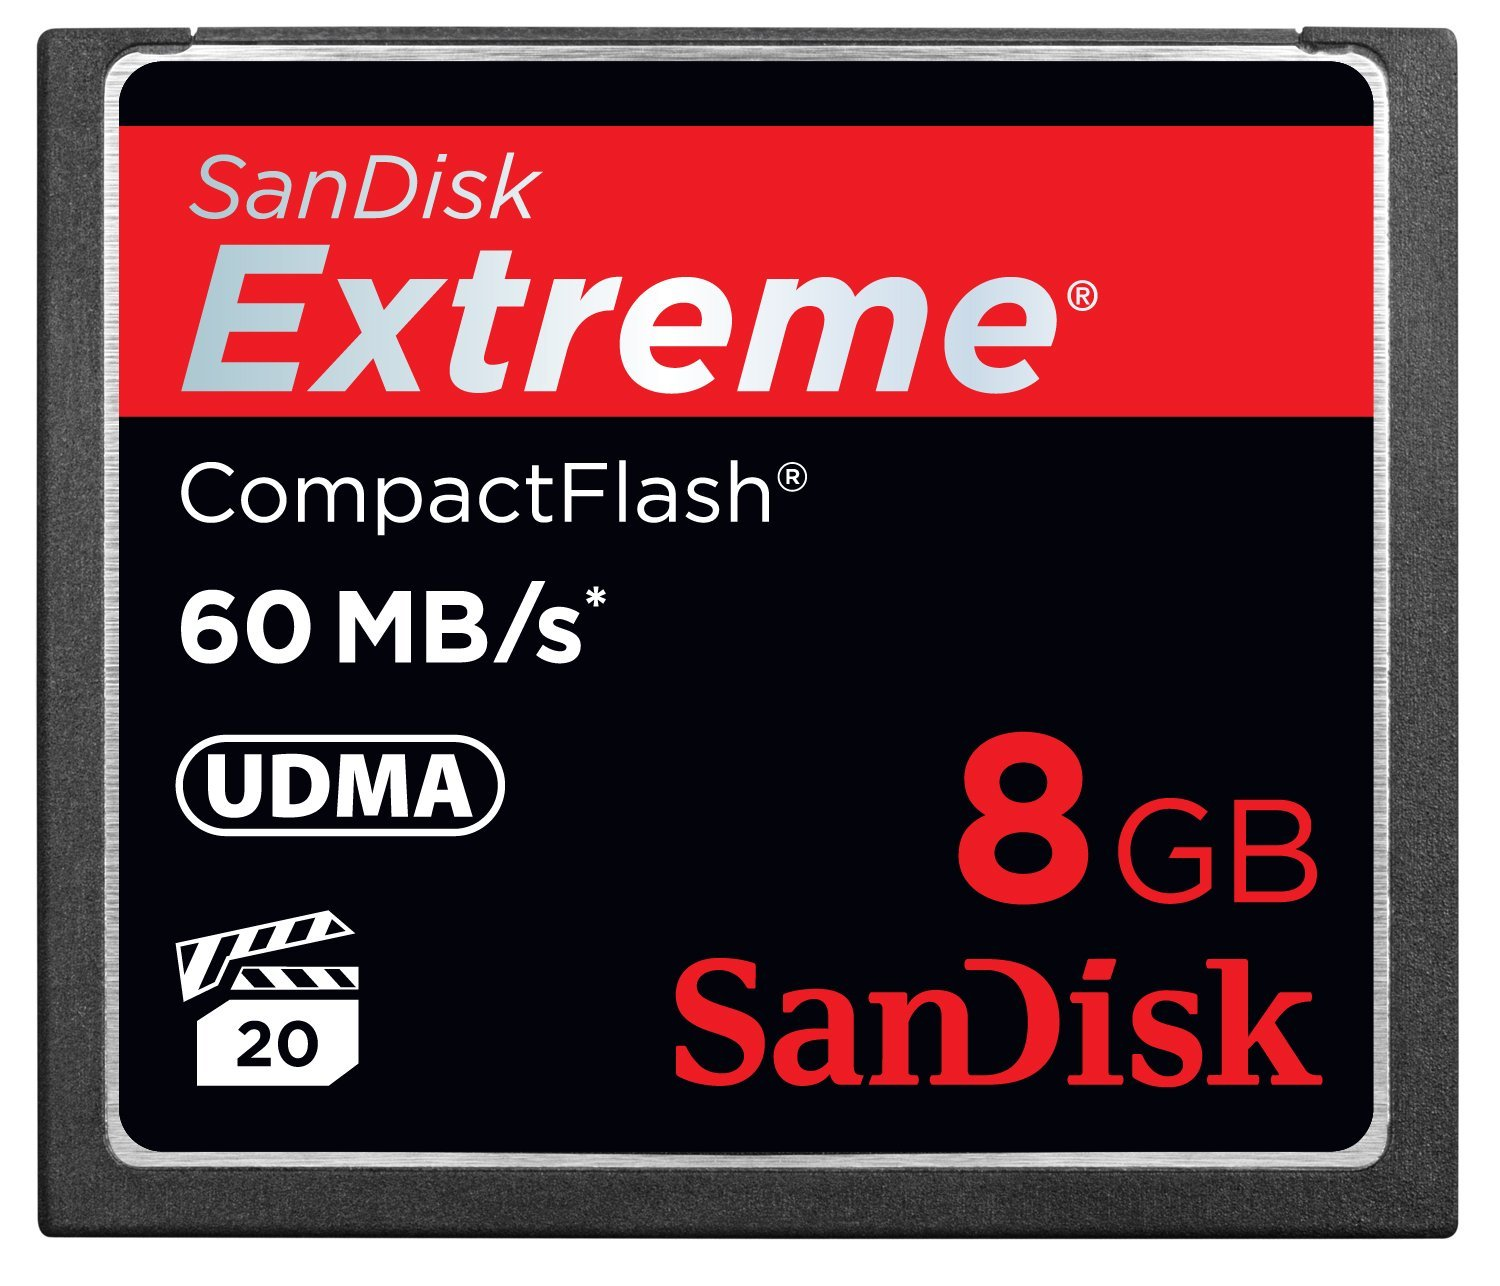 compact flash 8 mb: